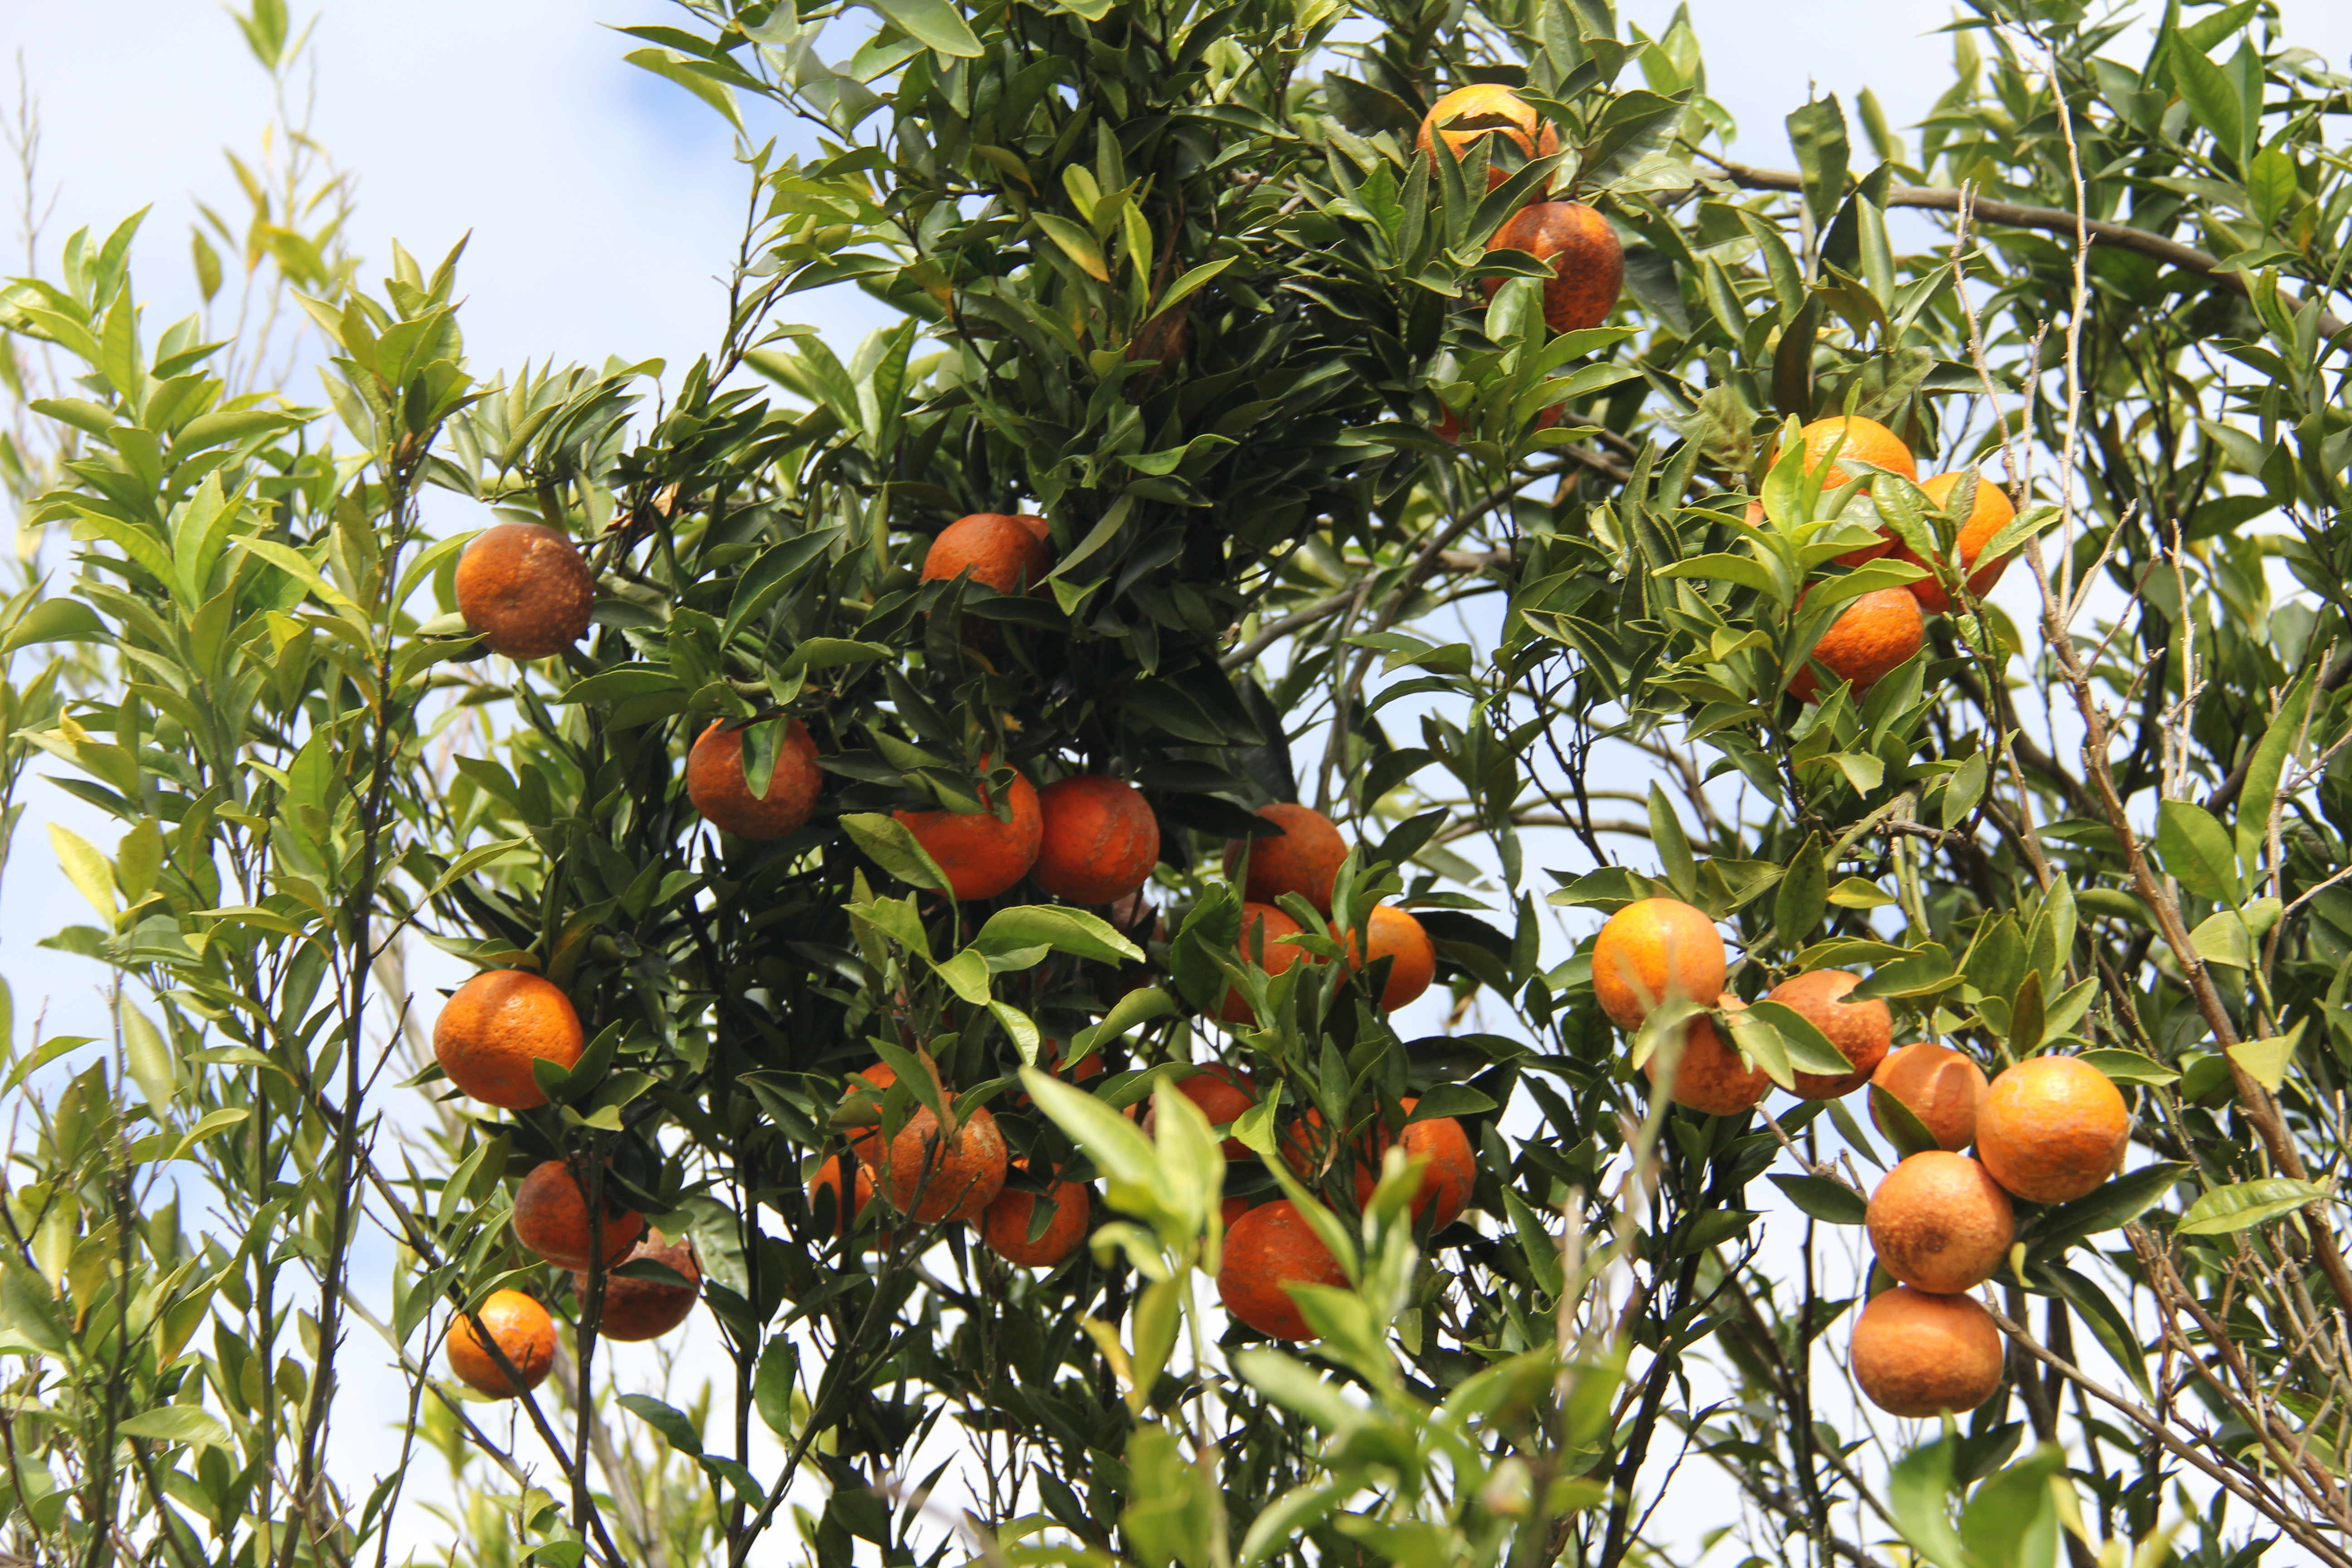 Since it launched in 2013 and 2014, Georgia's citrus industry has grown to about 2,000 acres of commercial citrus planted in southern Georgia, primarily cold-hardy satsumas.